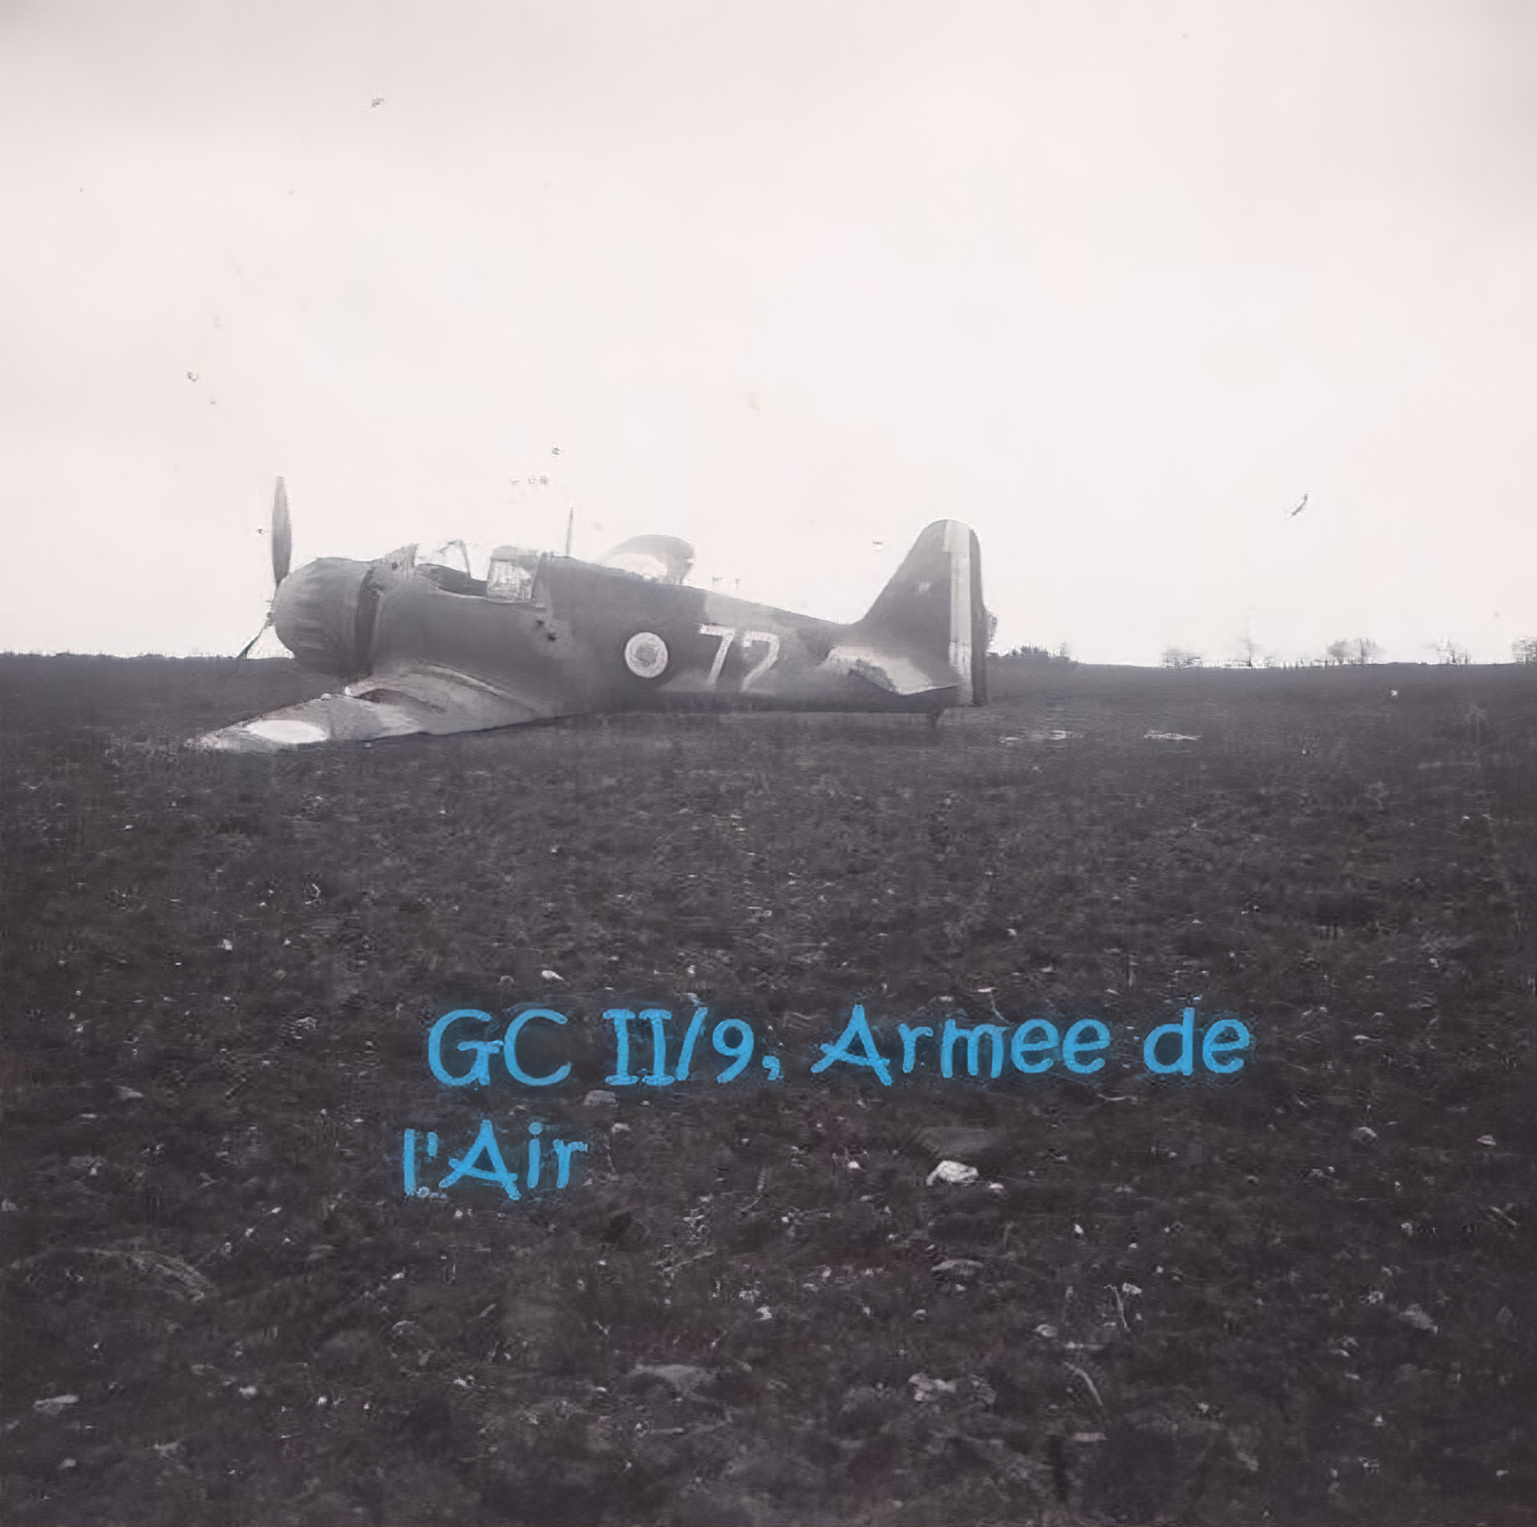 French Airforce Bloch MB 152 GCII.9 White 72 destroyed whilst on the ground battle of France May Jun 1940 02